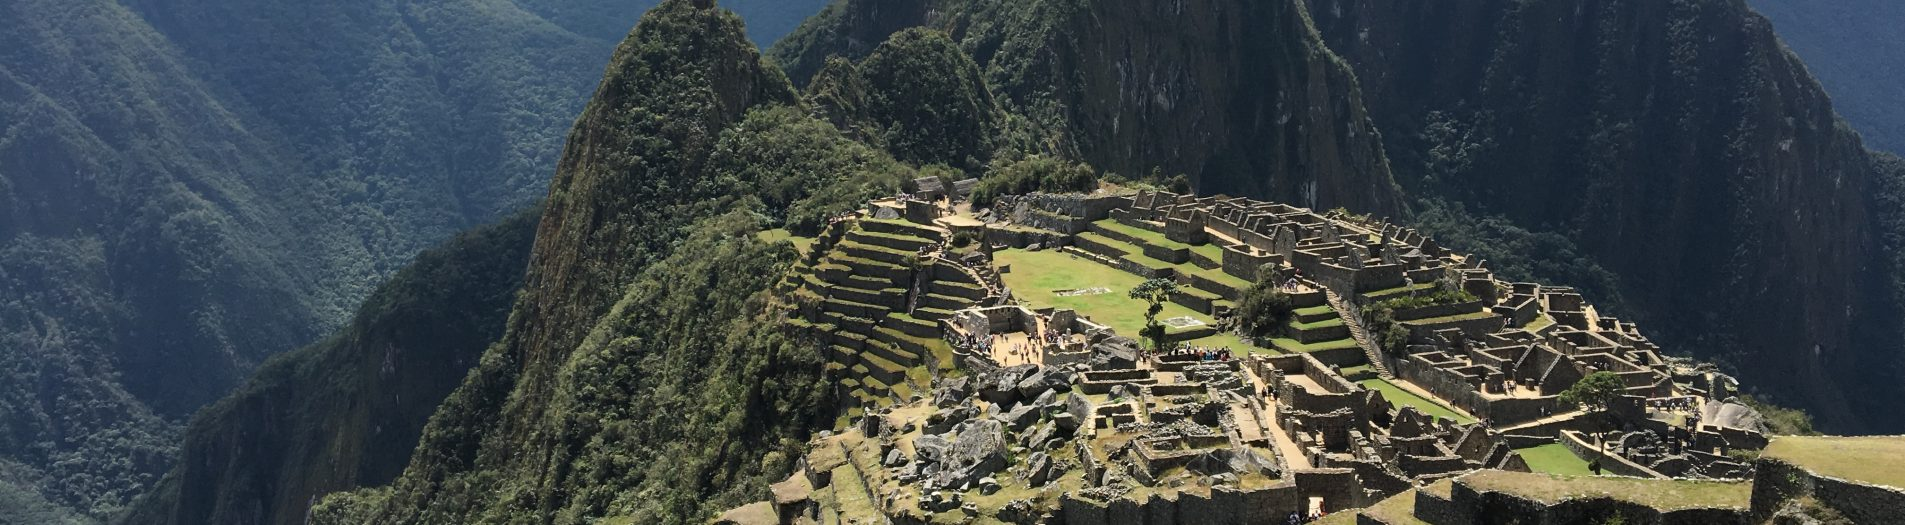 Travel Peru: My journey through pictures